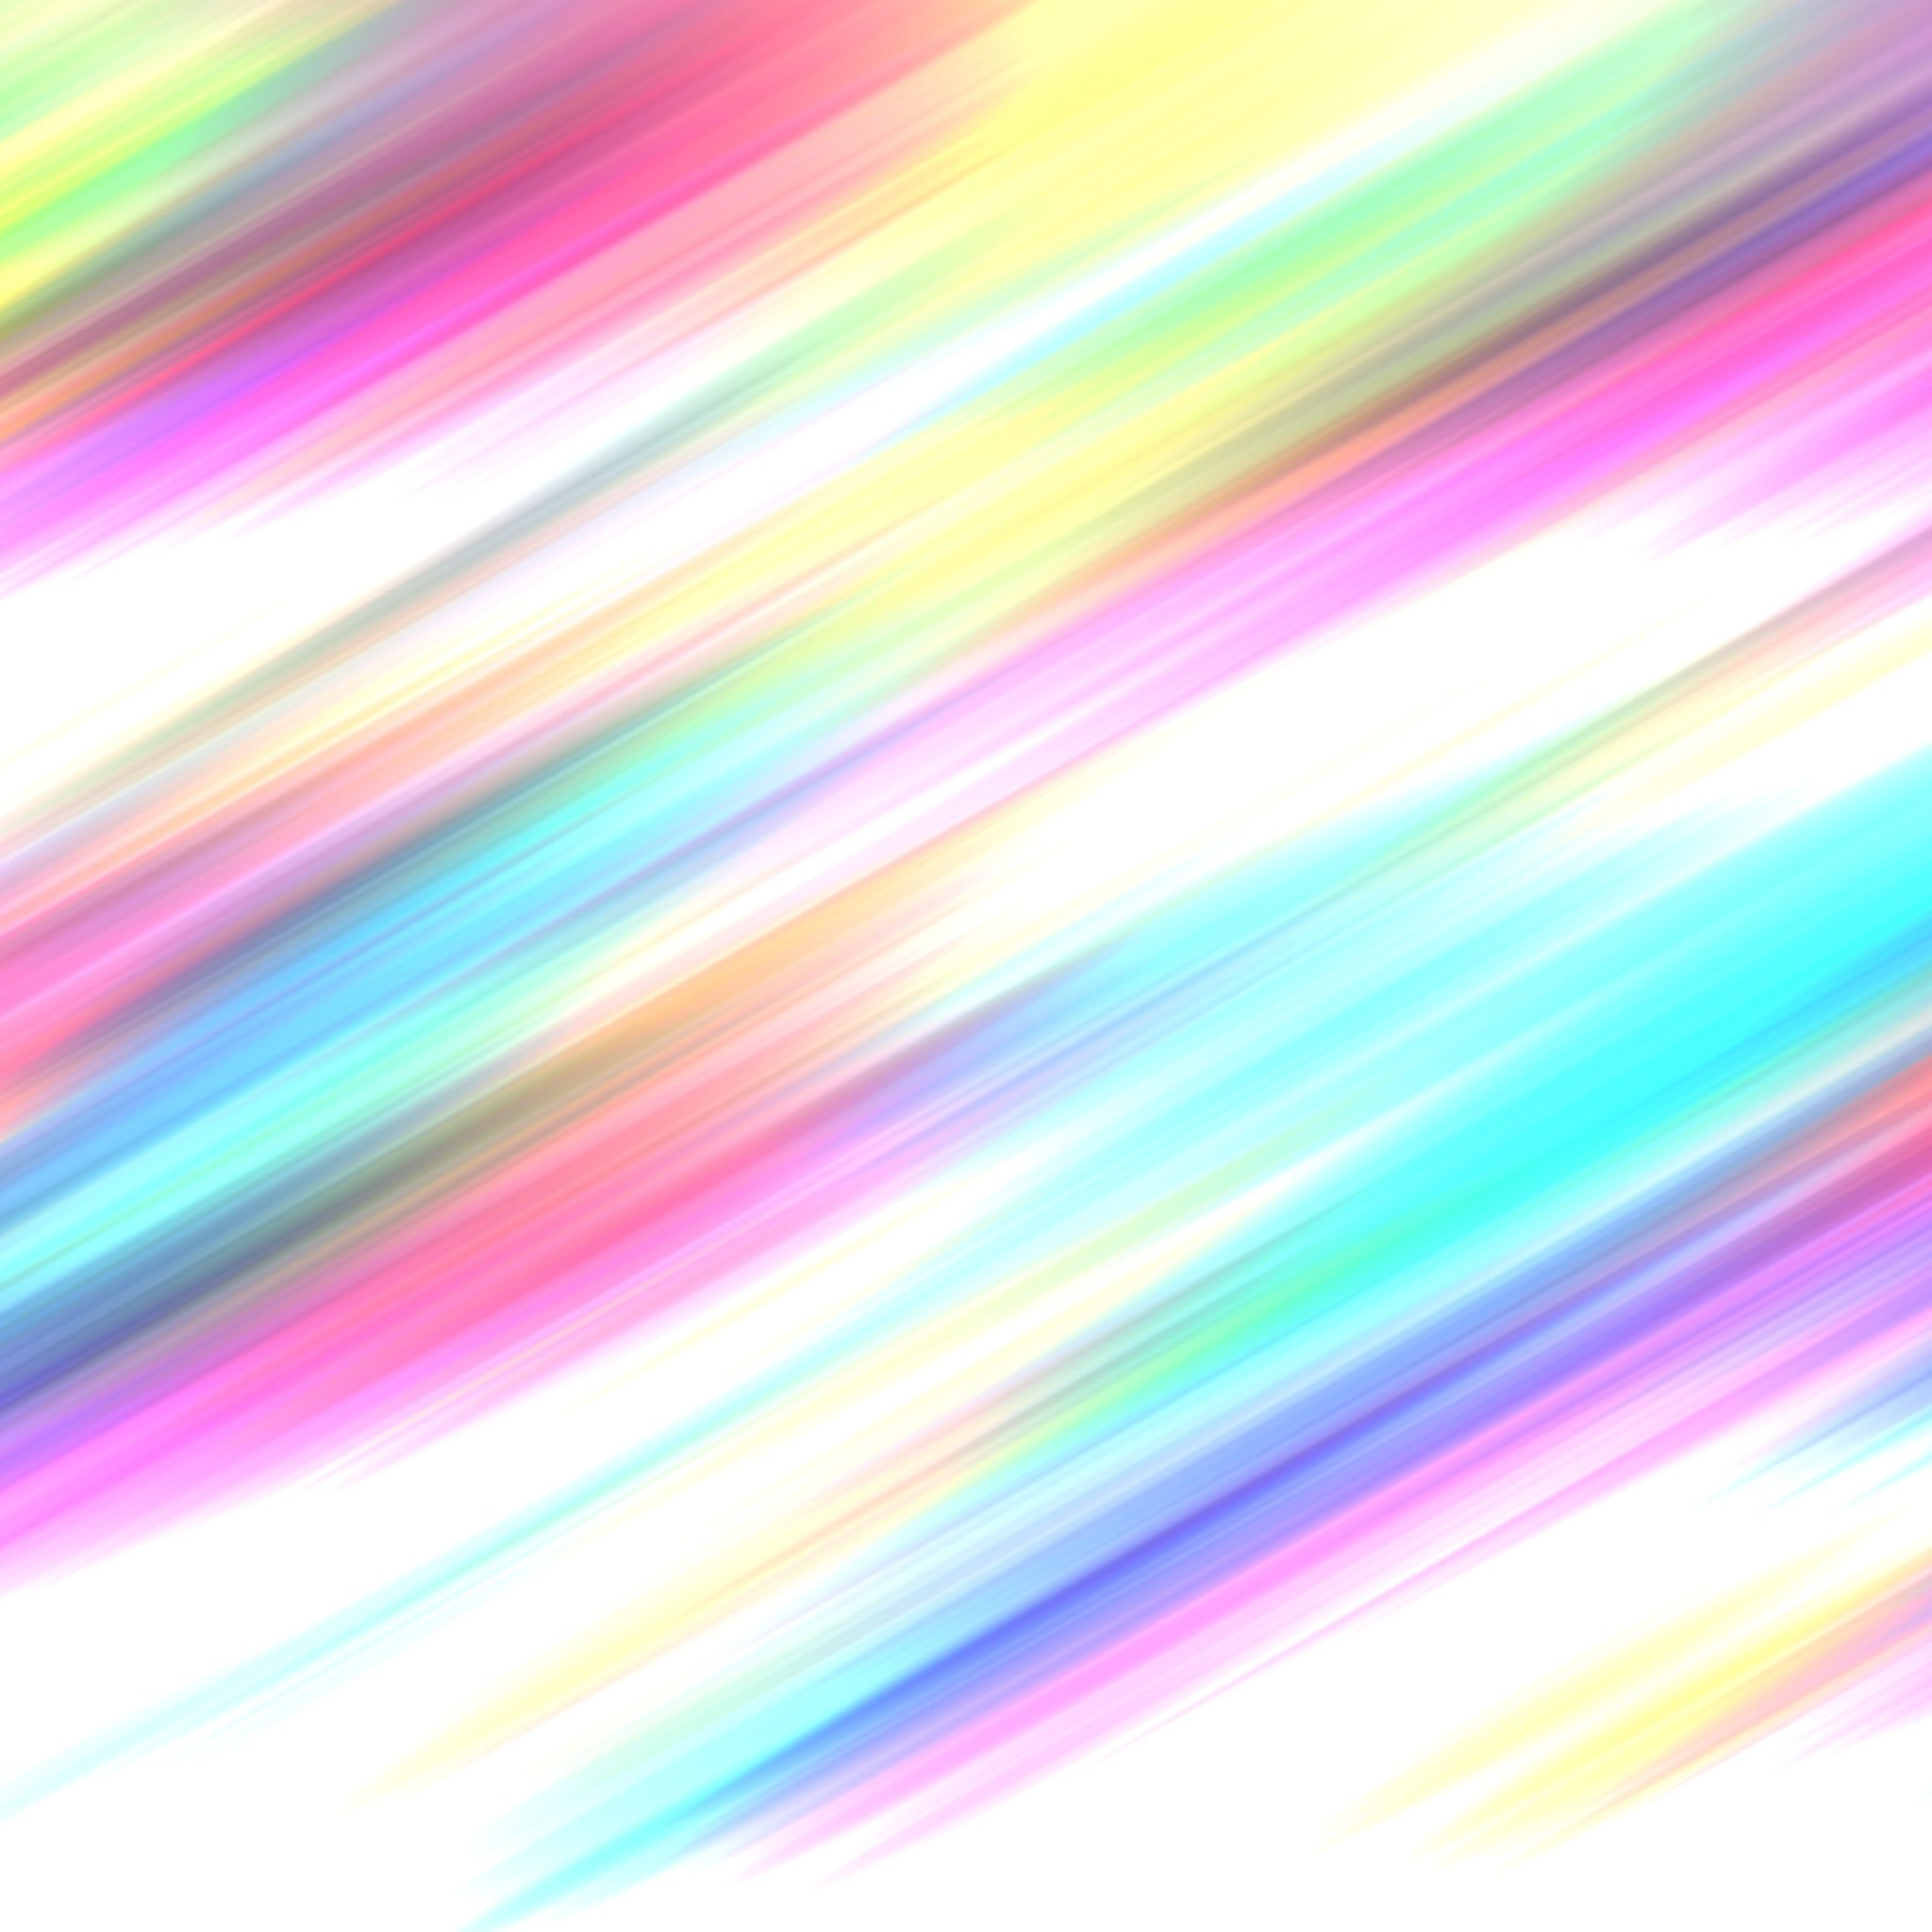 Colorful Abstract 4K UHD Wallpaper